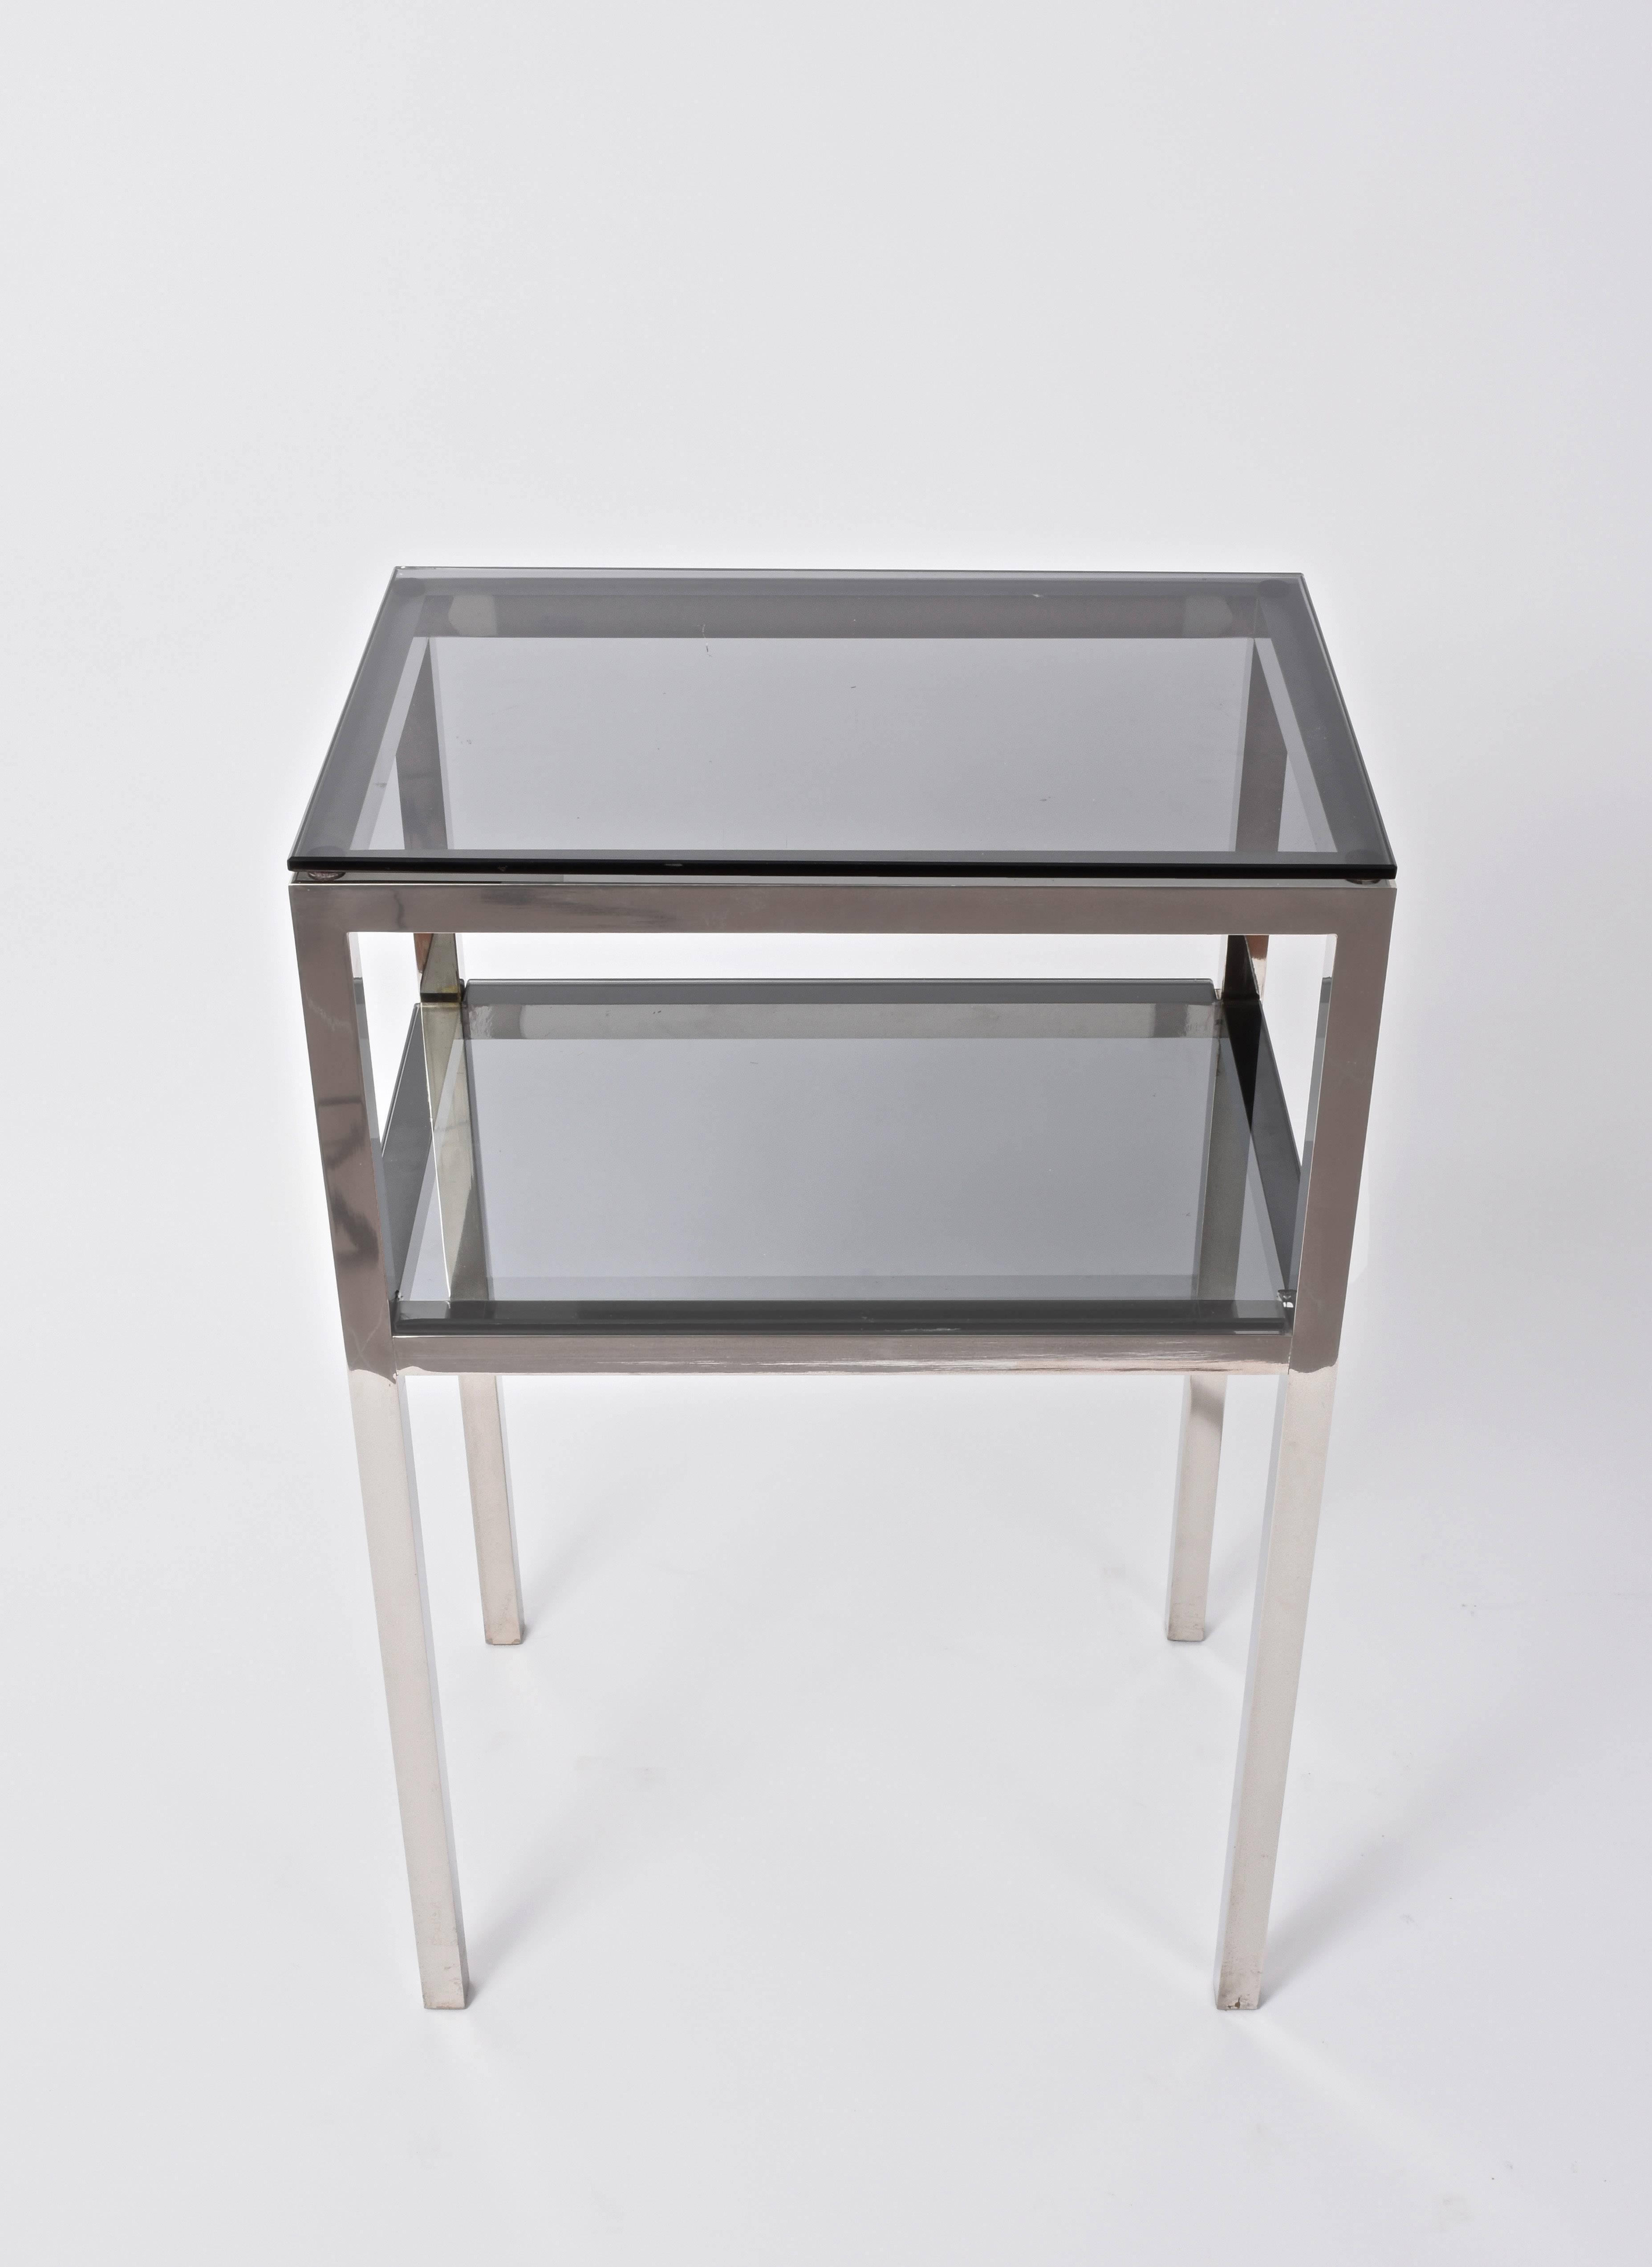 pair mid century two tiered accent tables attributed romeo dsc master chrome metal glass console sofa table with shelf rega for laminate floor door threshold ikea white storage